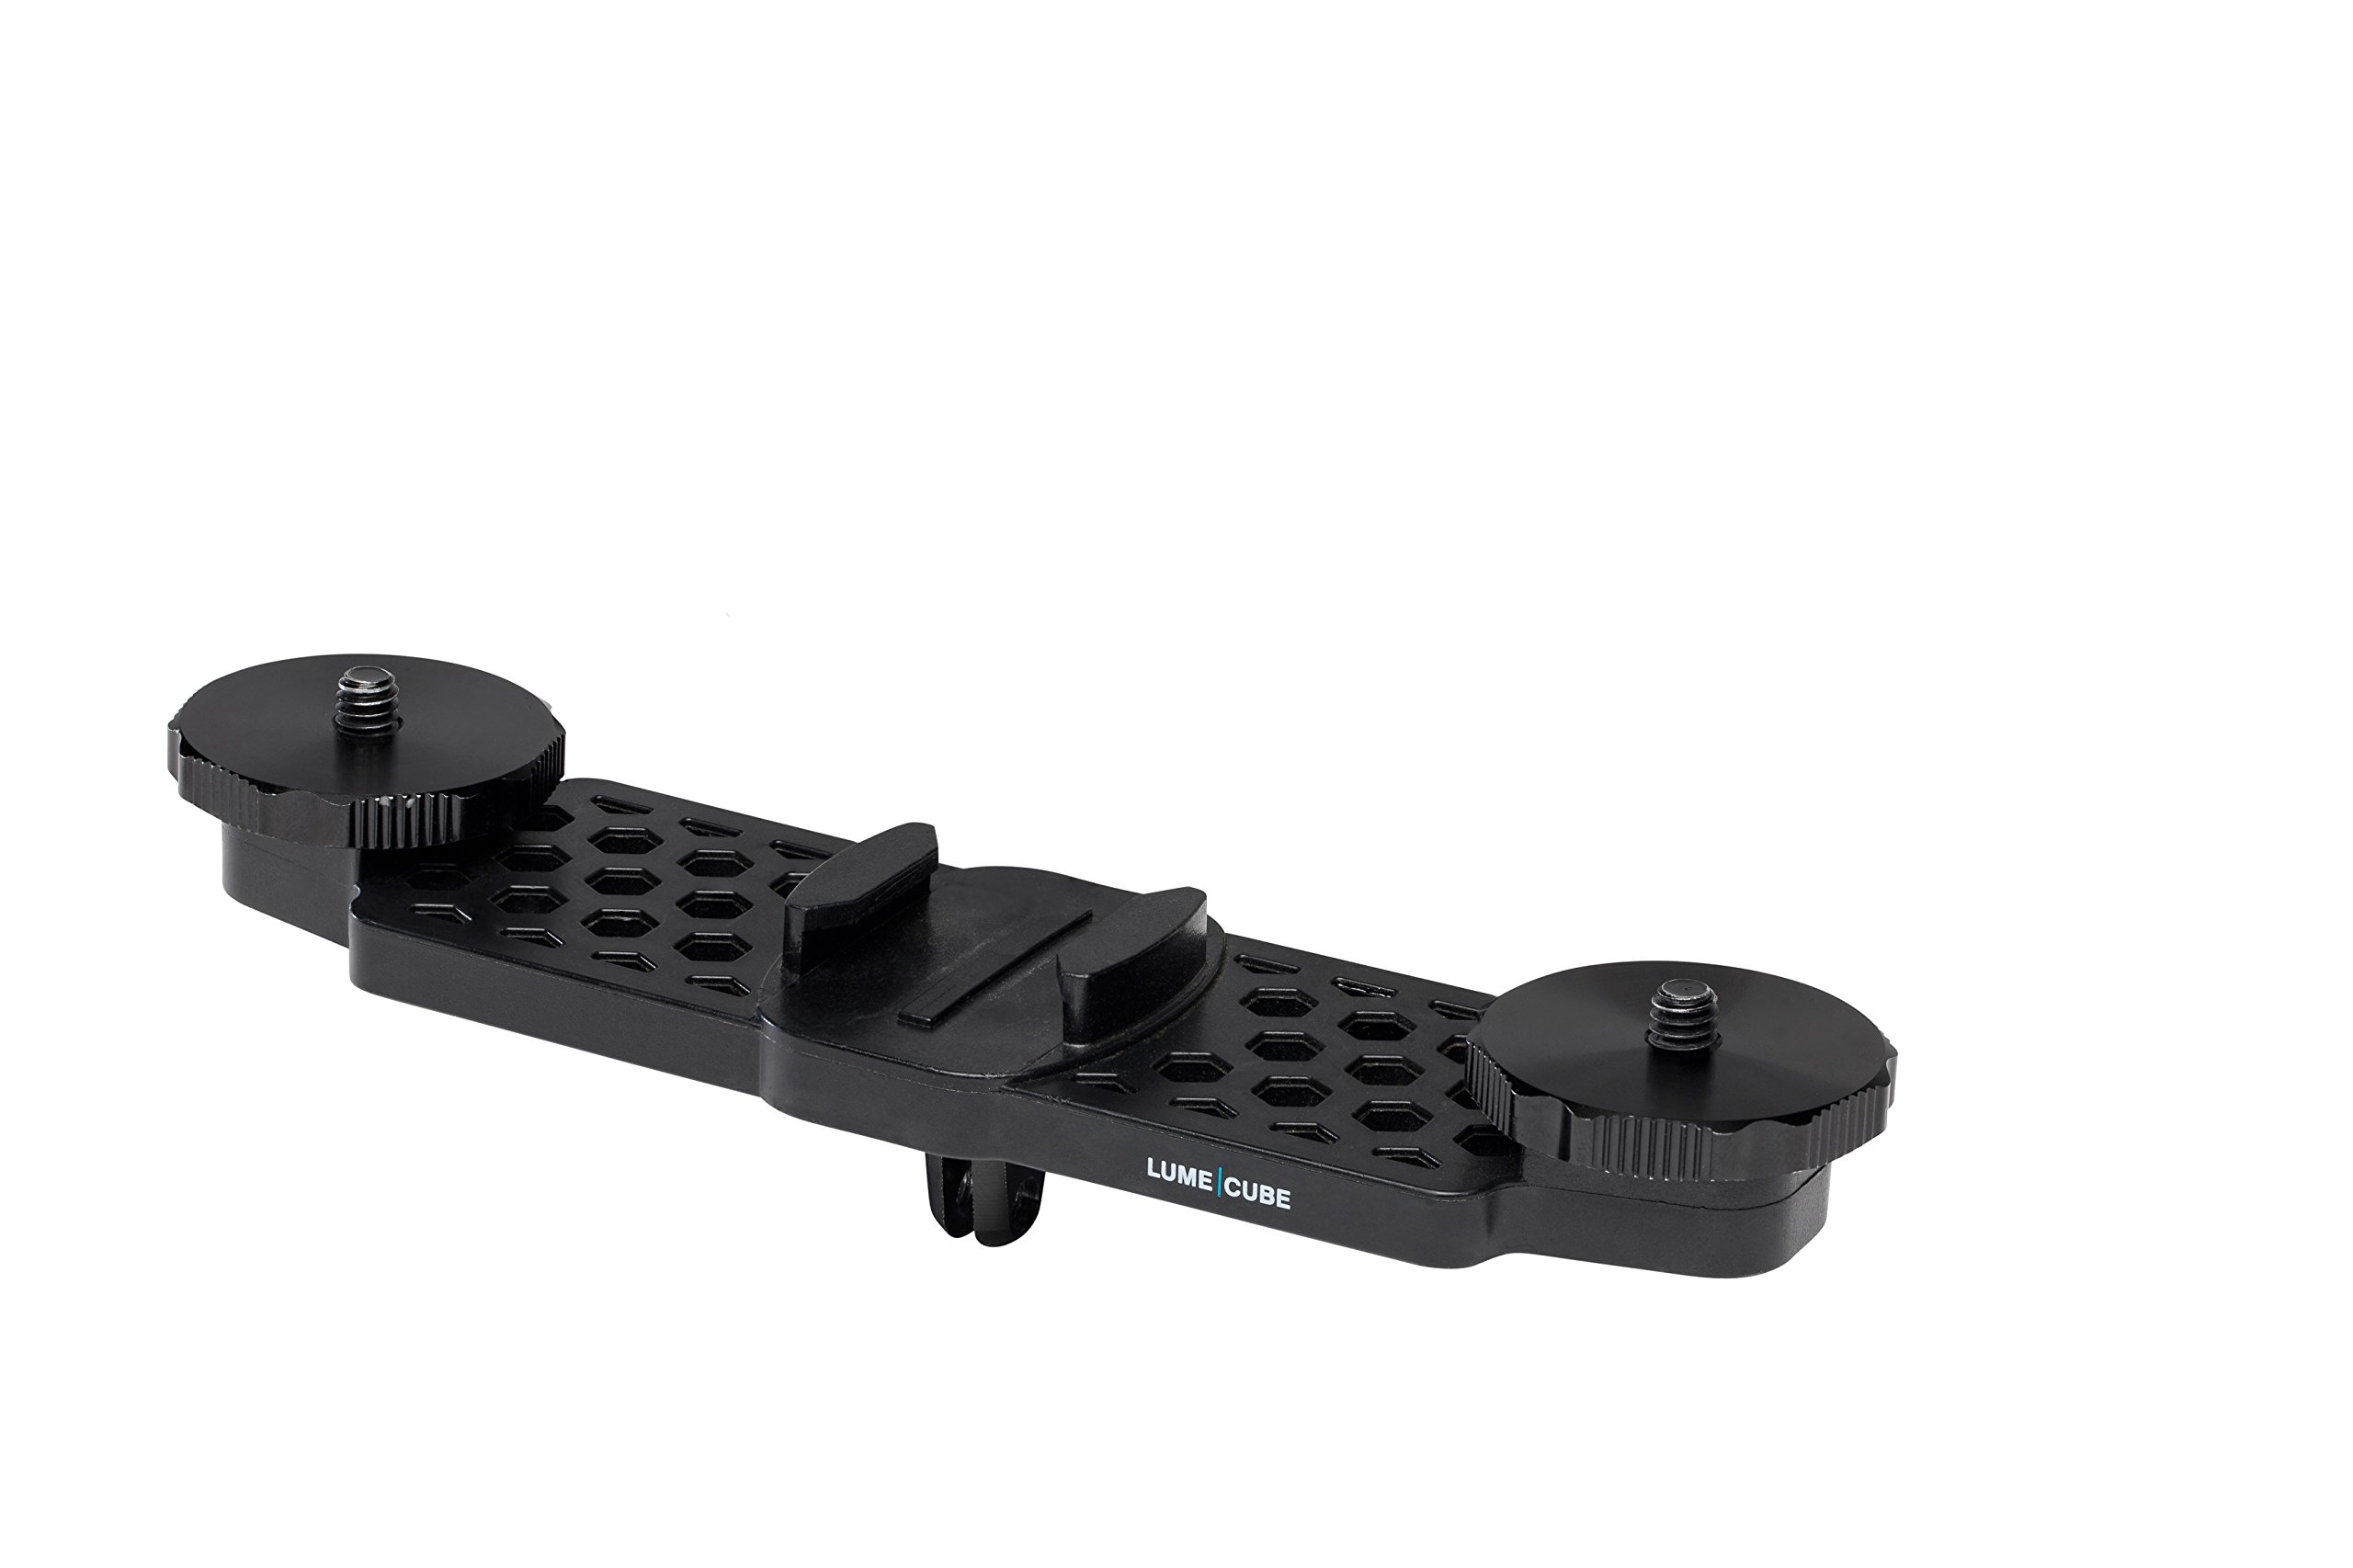 Lume Cube - Mounting Bar for GoPro/Action Cameras (Black - Mounting Bar) by LUME CUBE (Image #1)